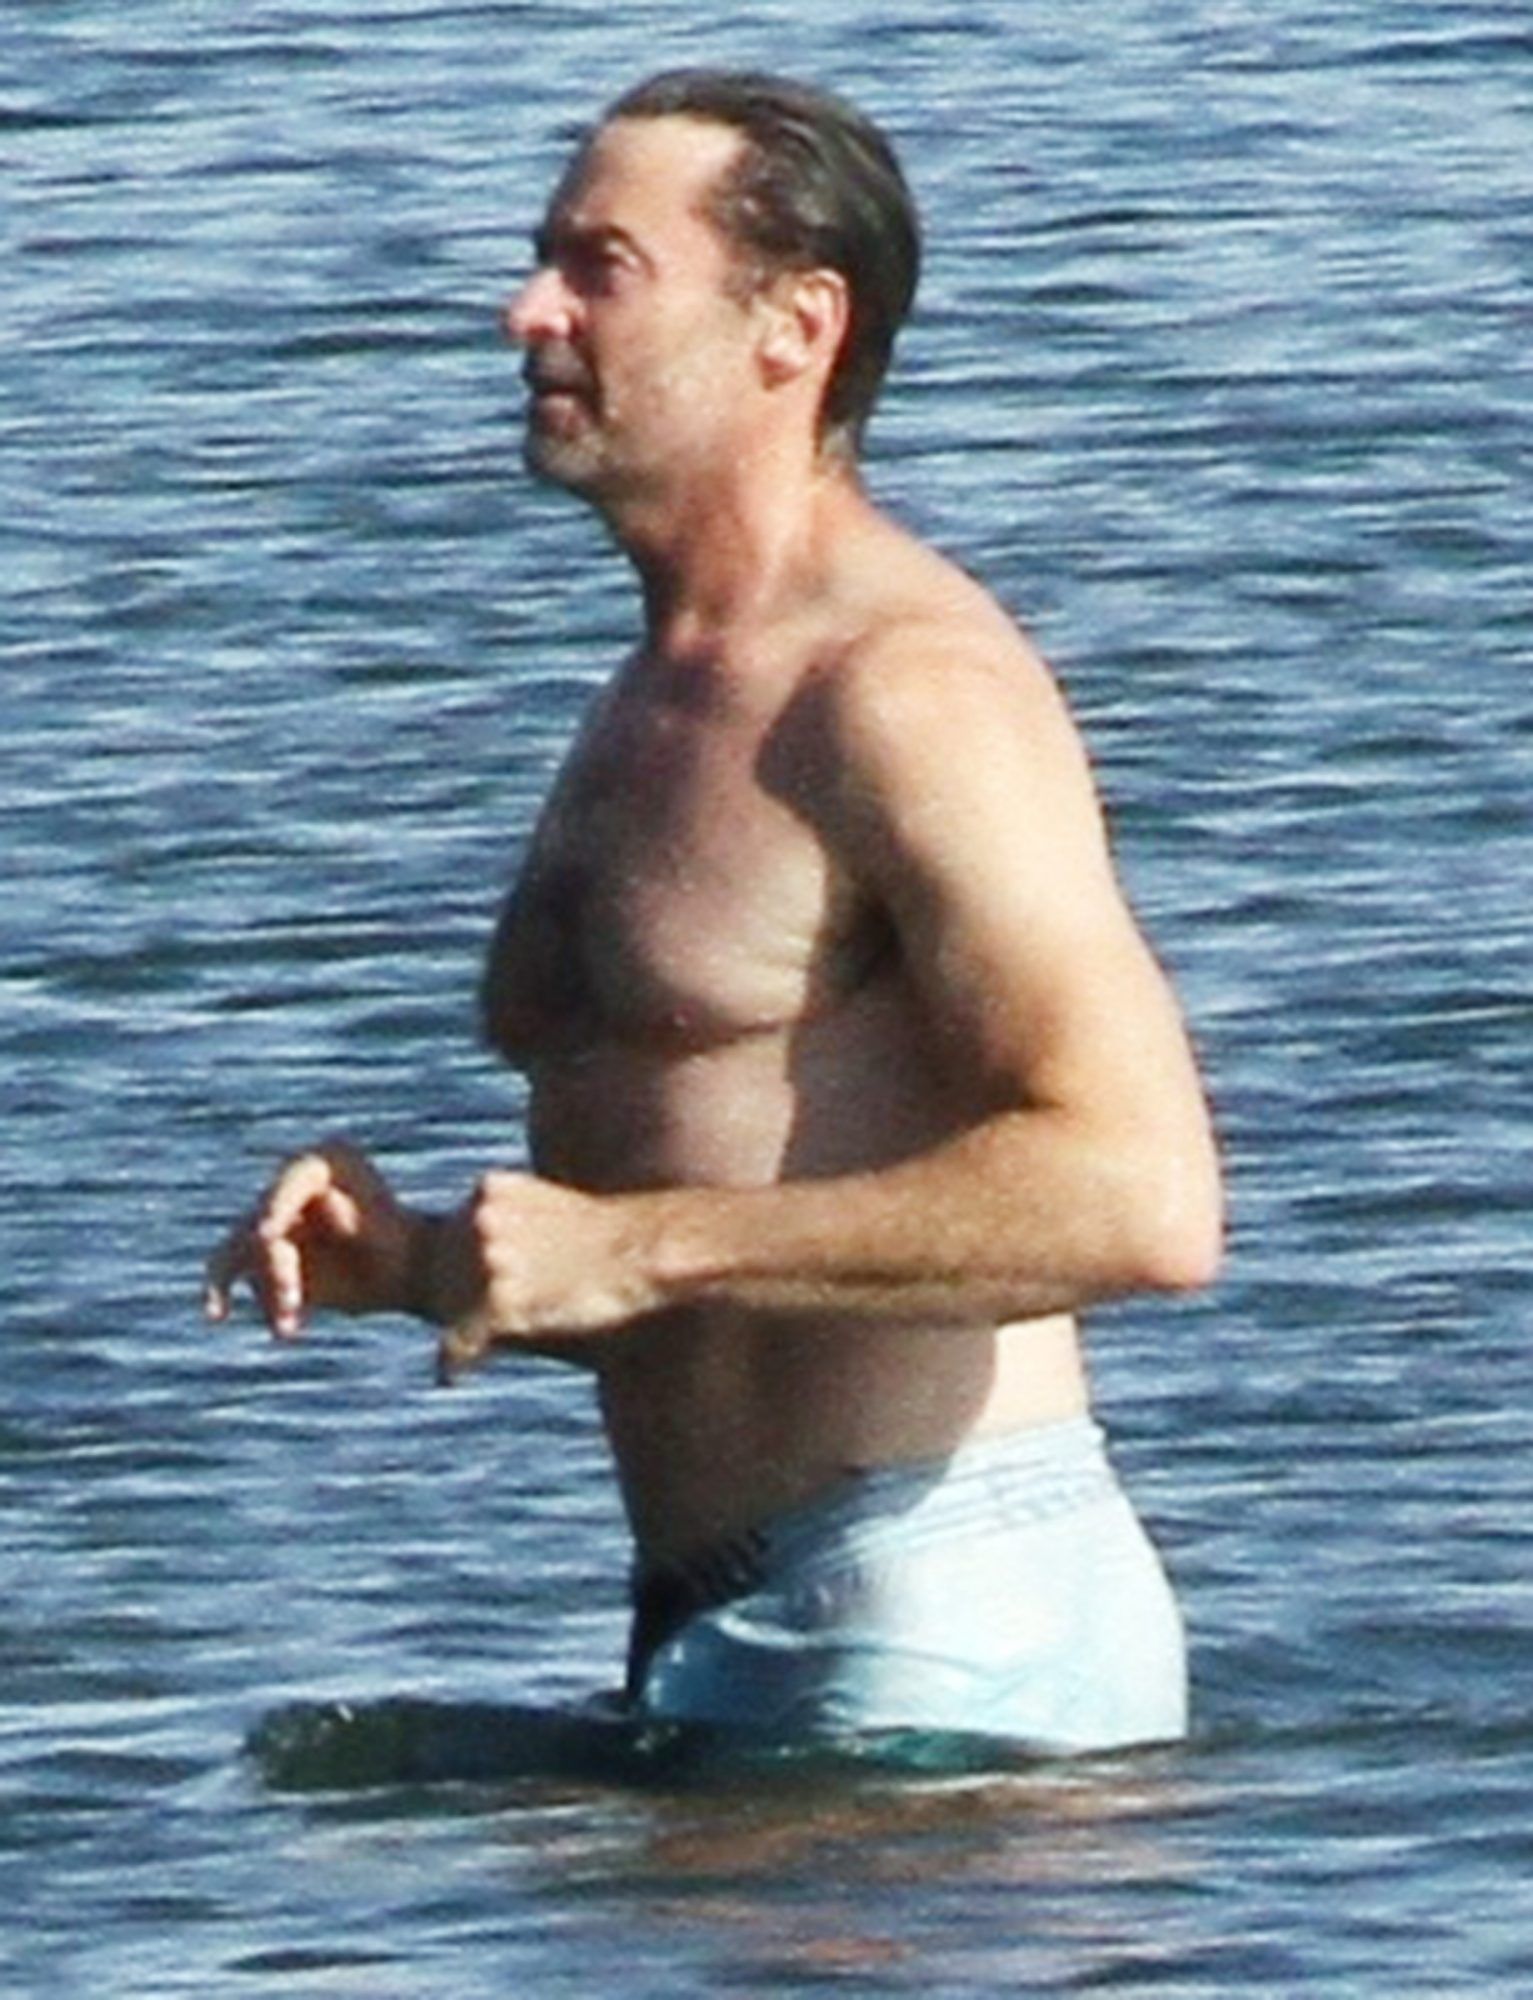 Hugh Jackman Goes For A Swim After Walking Dog In The Hampton's